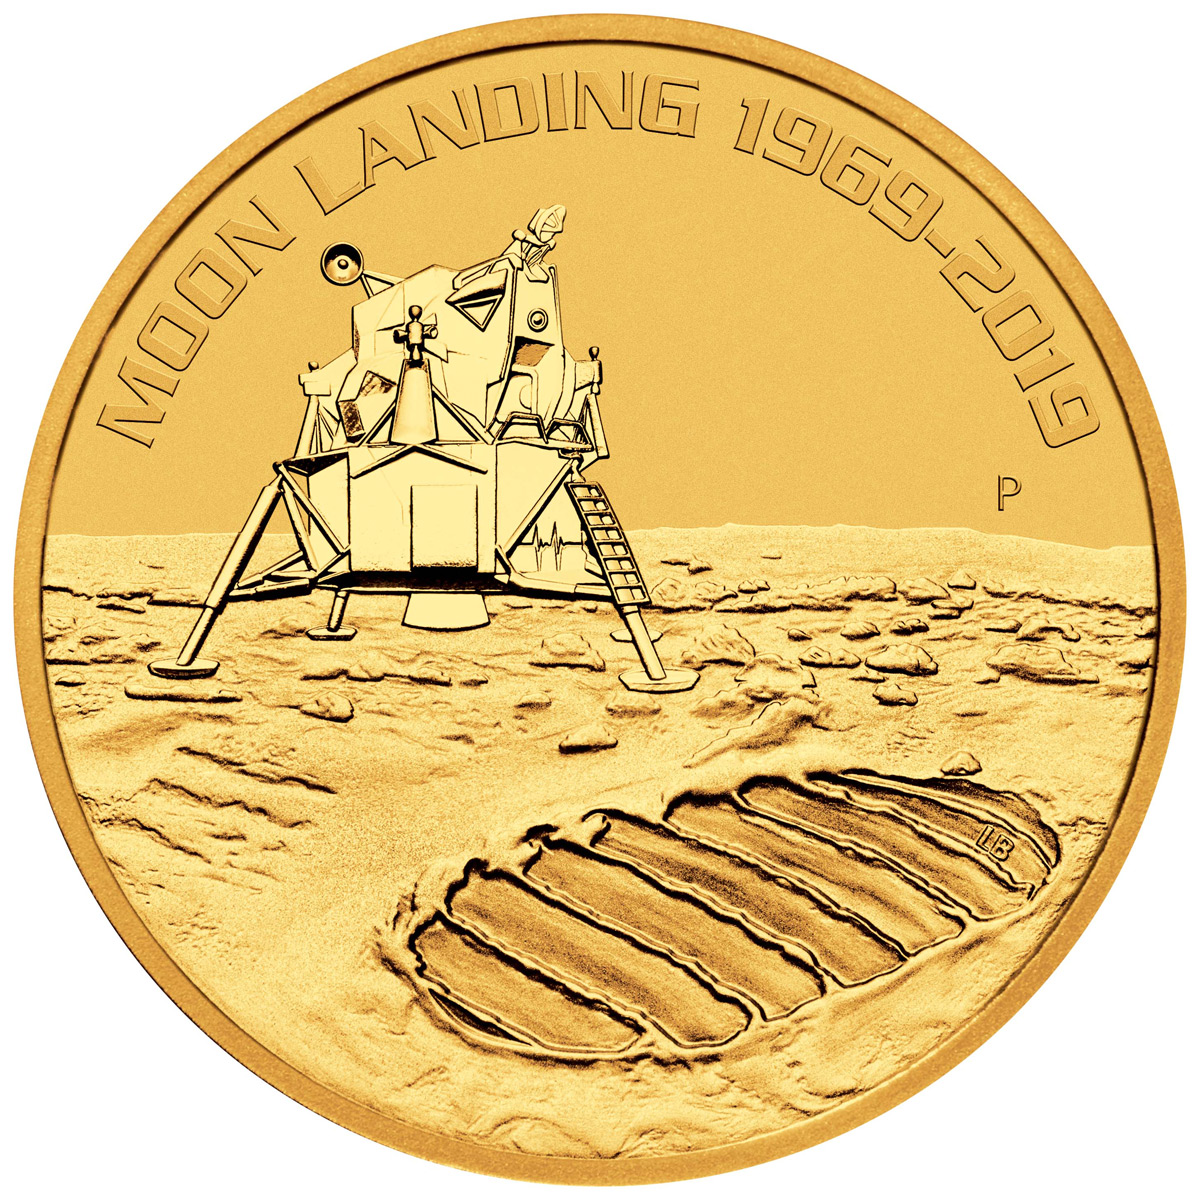 2019-P Australia Apollo 11 Moon Landing 1 oz Gold $100 Coin GEM BU